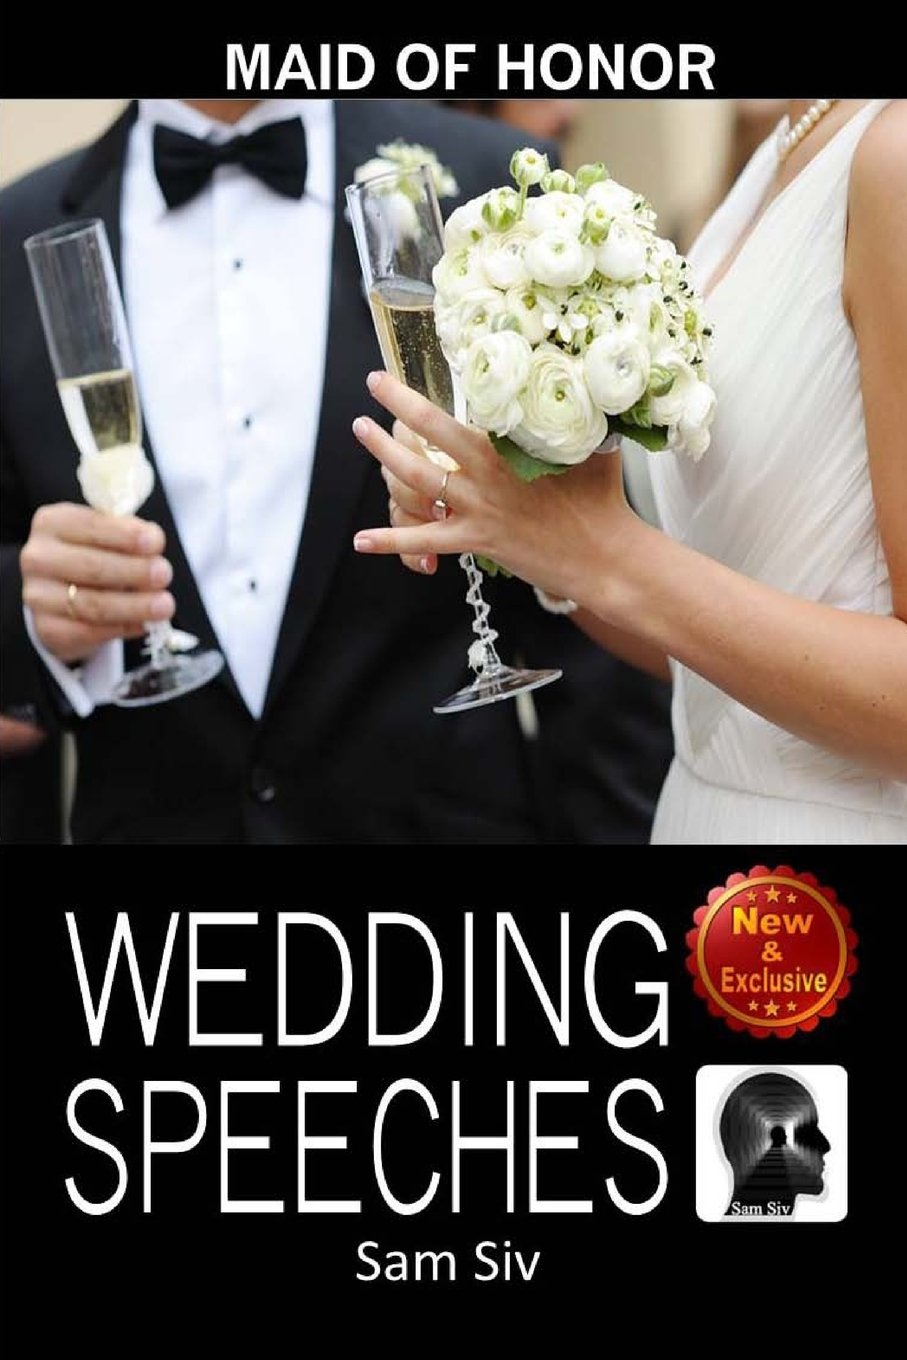 Wedding Speeches: Maid of Honor Speech: Let Me Help You With That Speech Speeches for the Maid of Honor (Wedding Speeches Books By Sam Siv) (Volume 7)